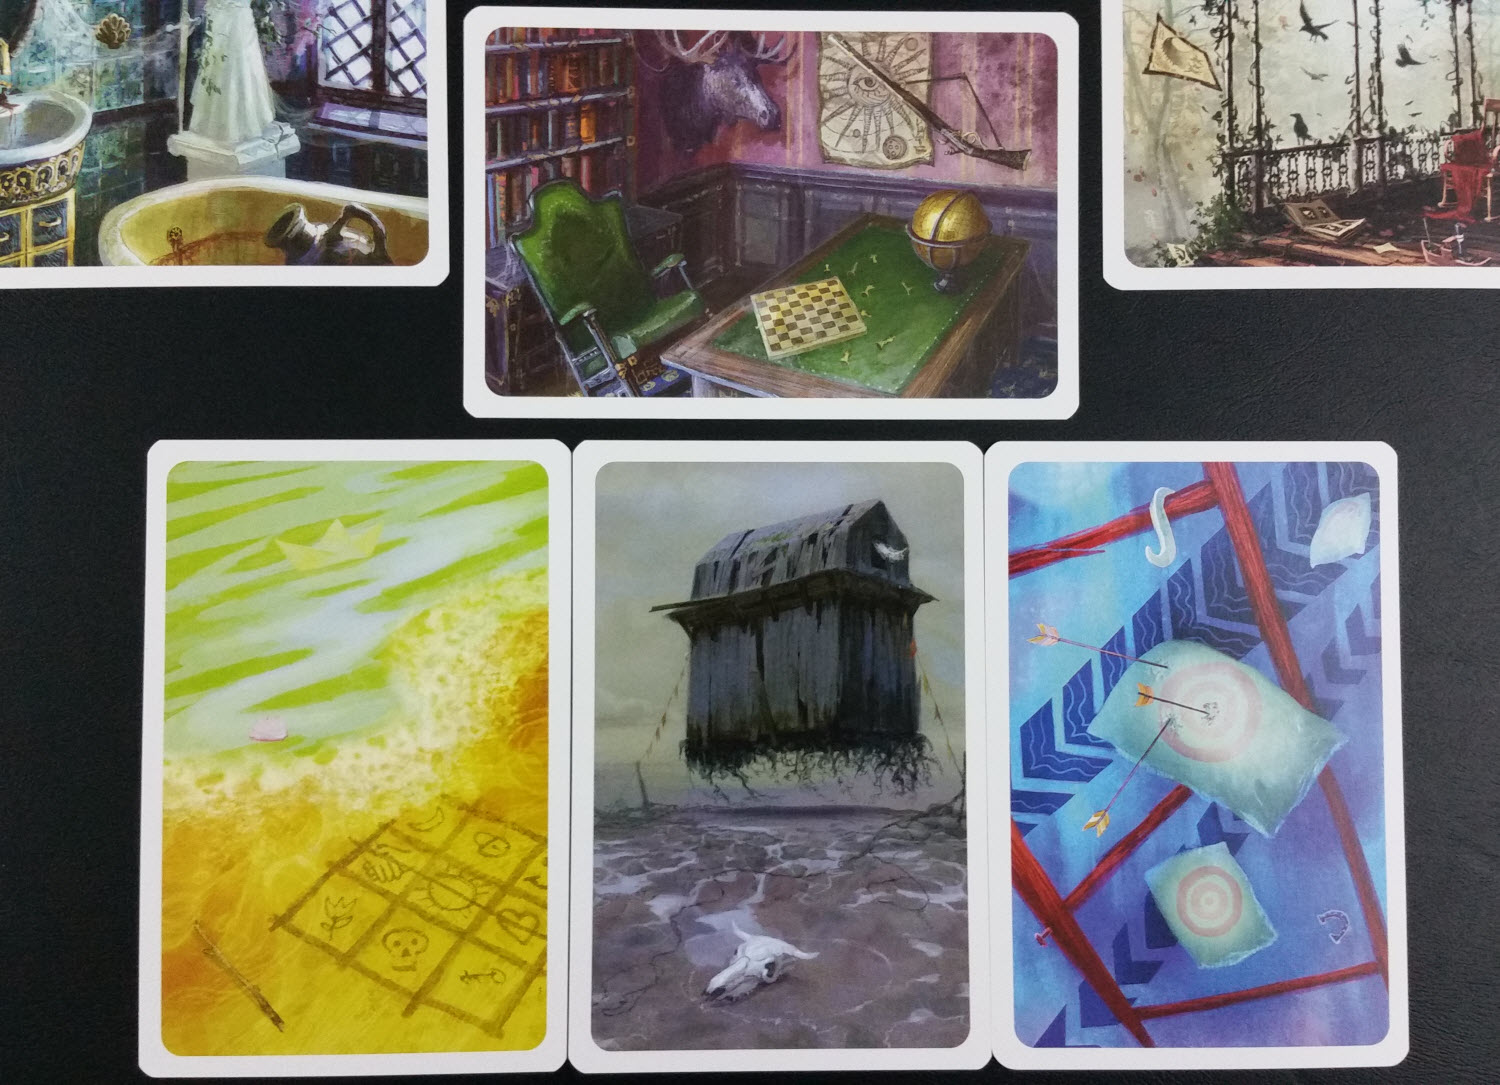 The Spirit used these three cards for this Location. Will players make the same connections?